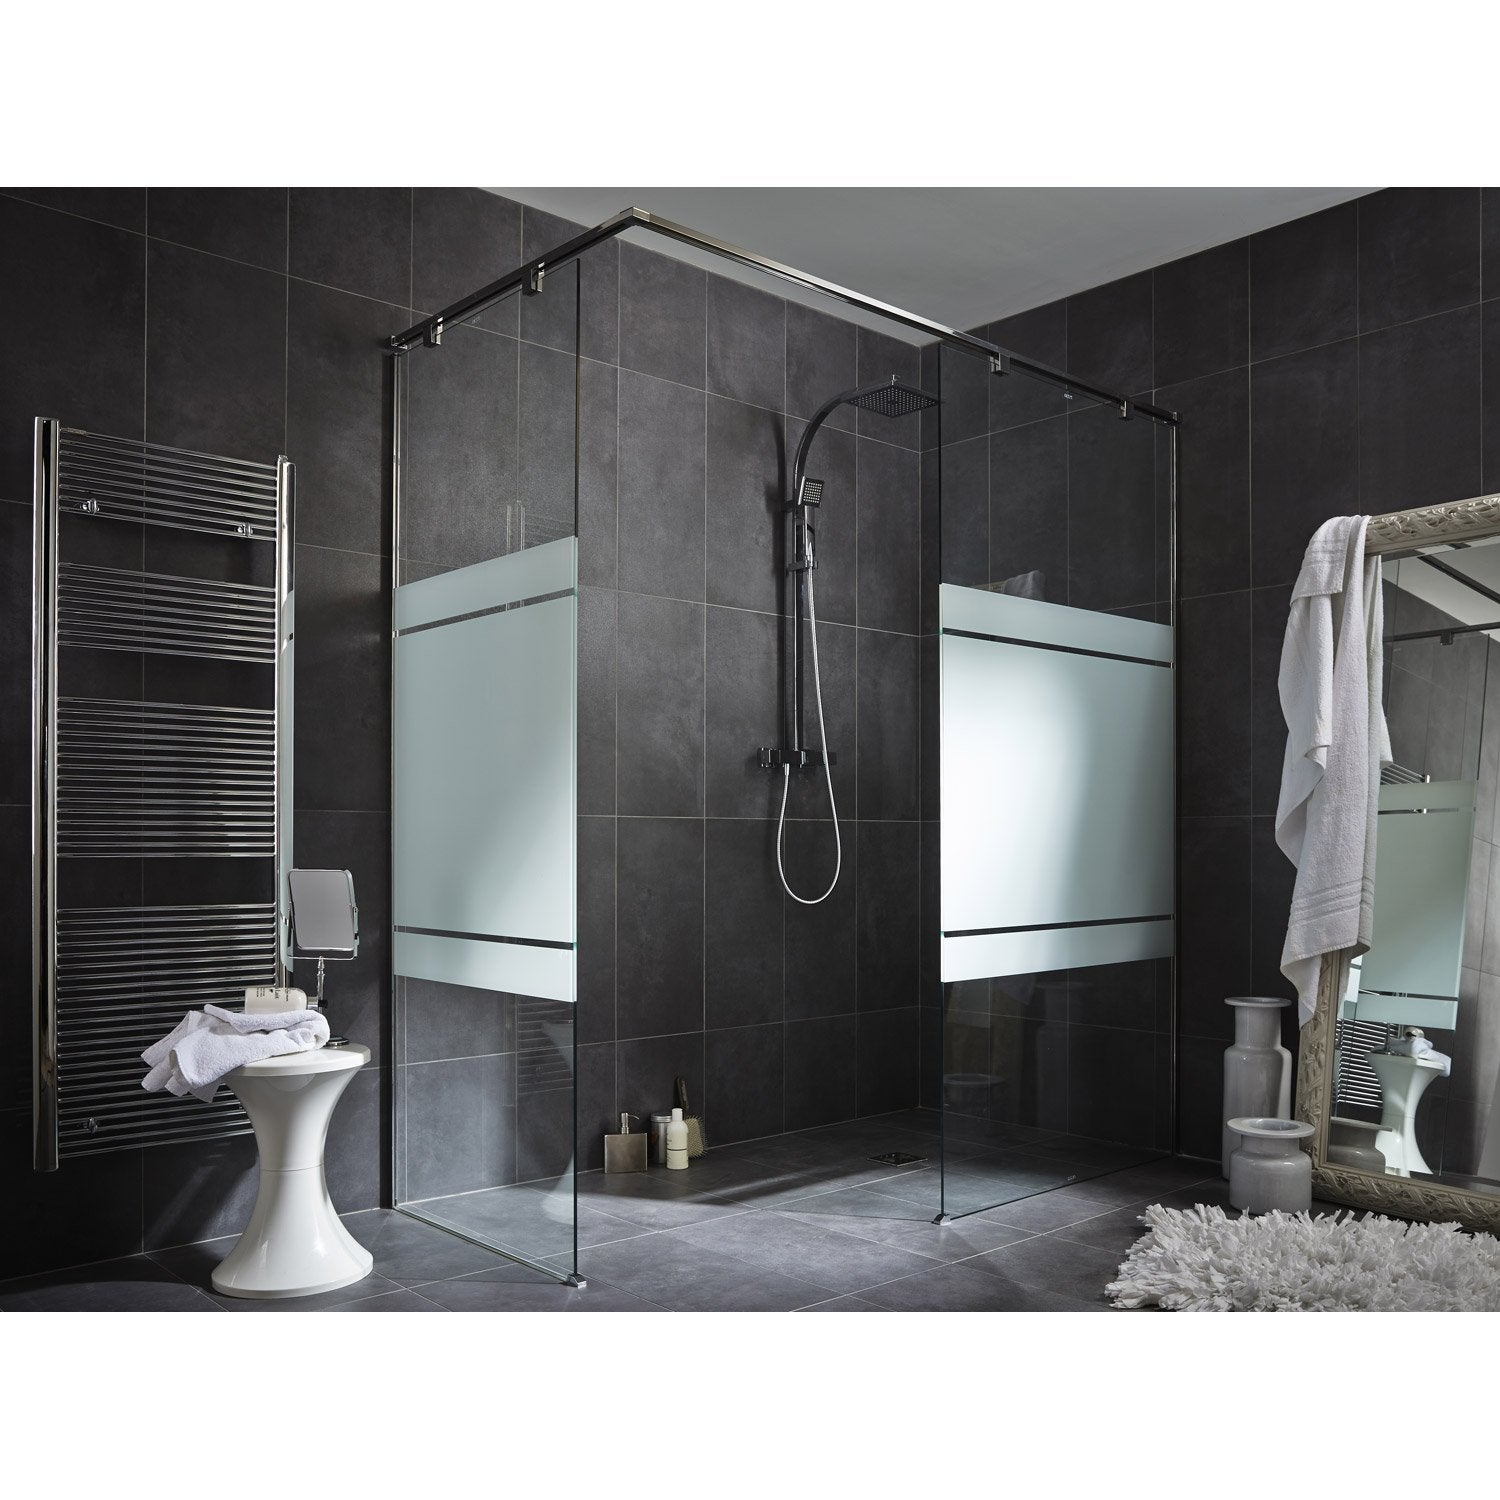 paroi de douche l 39 italienne cm verre s rigraphi 8 mm eliseo espace leroy merlin. Black Bedroom Furniture Sets. Home Design Ideas